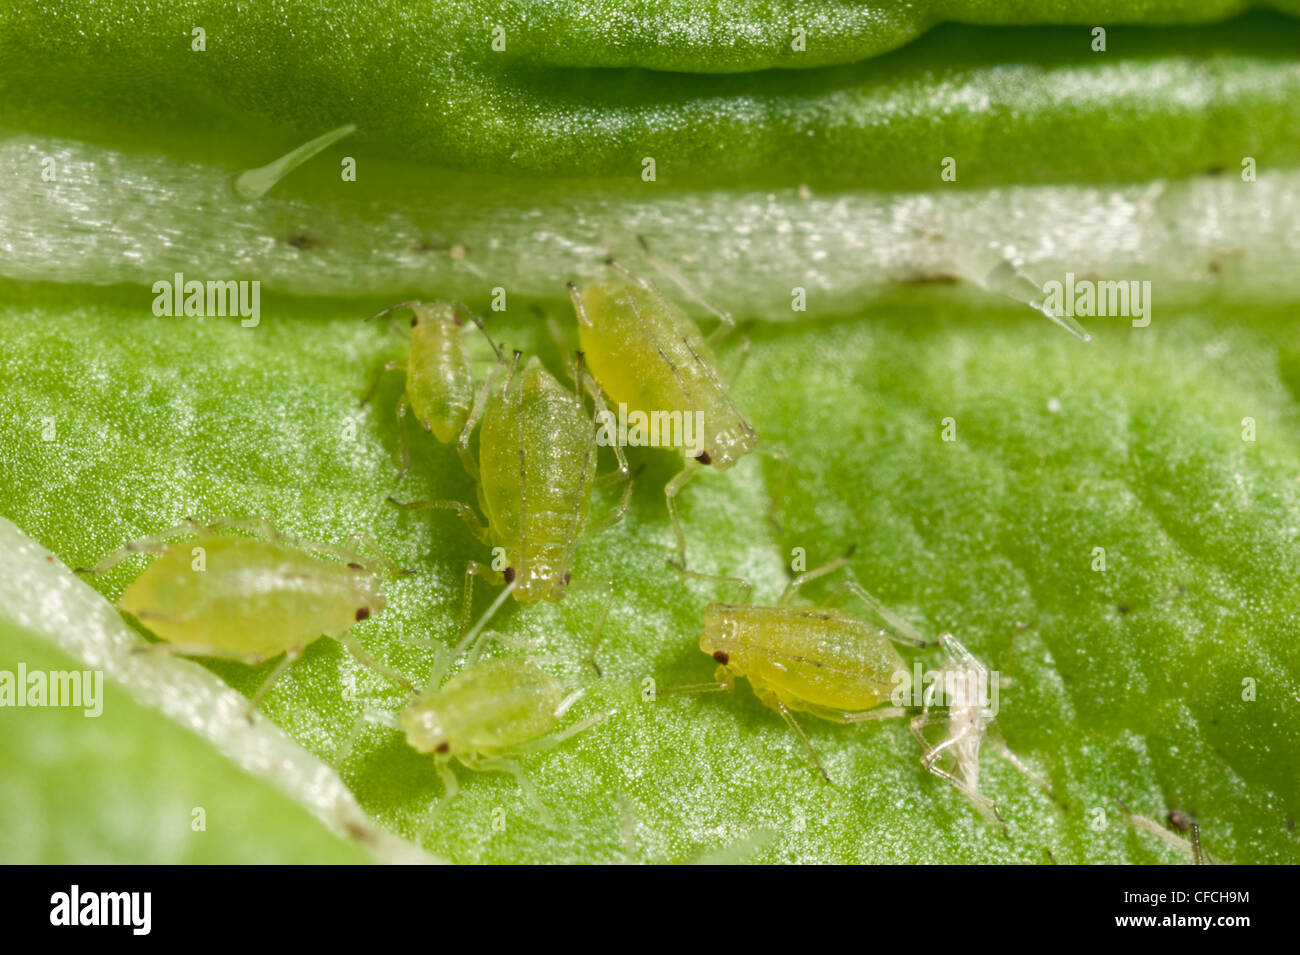 Green Peach aphids - Stock Image